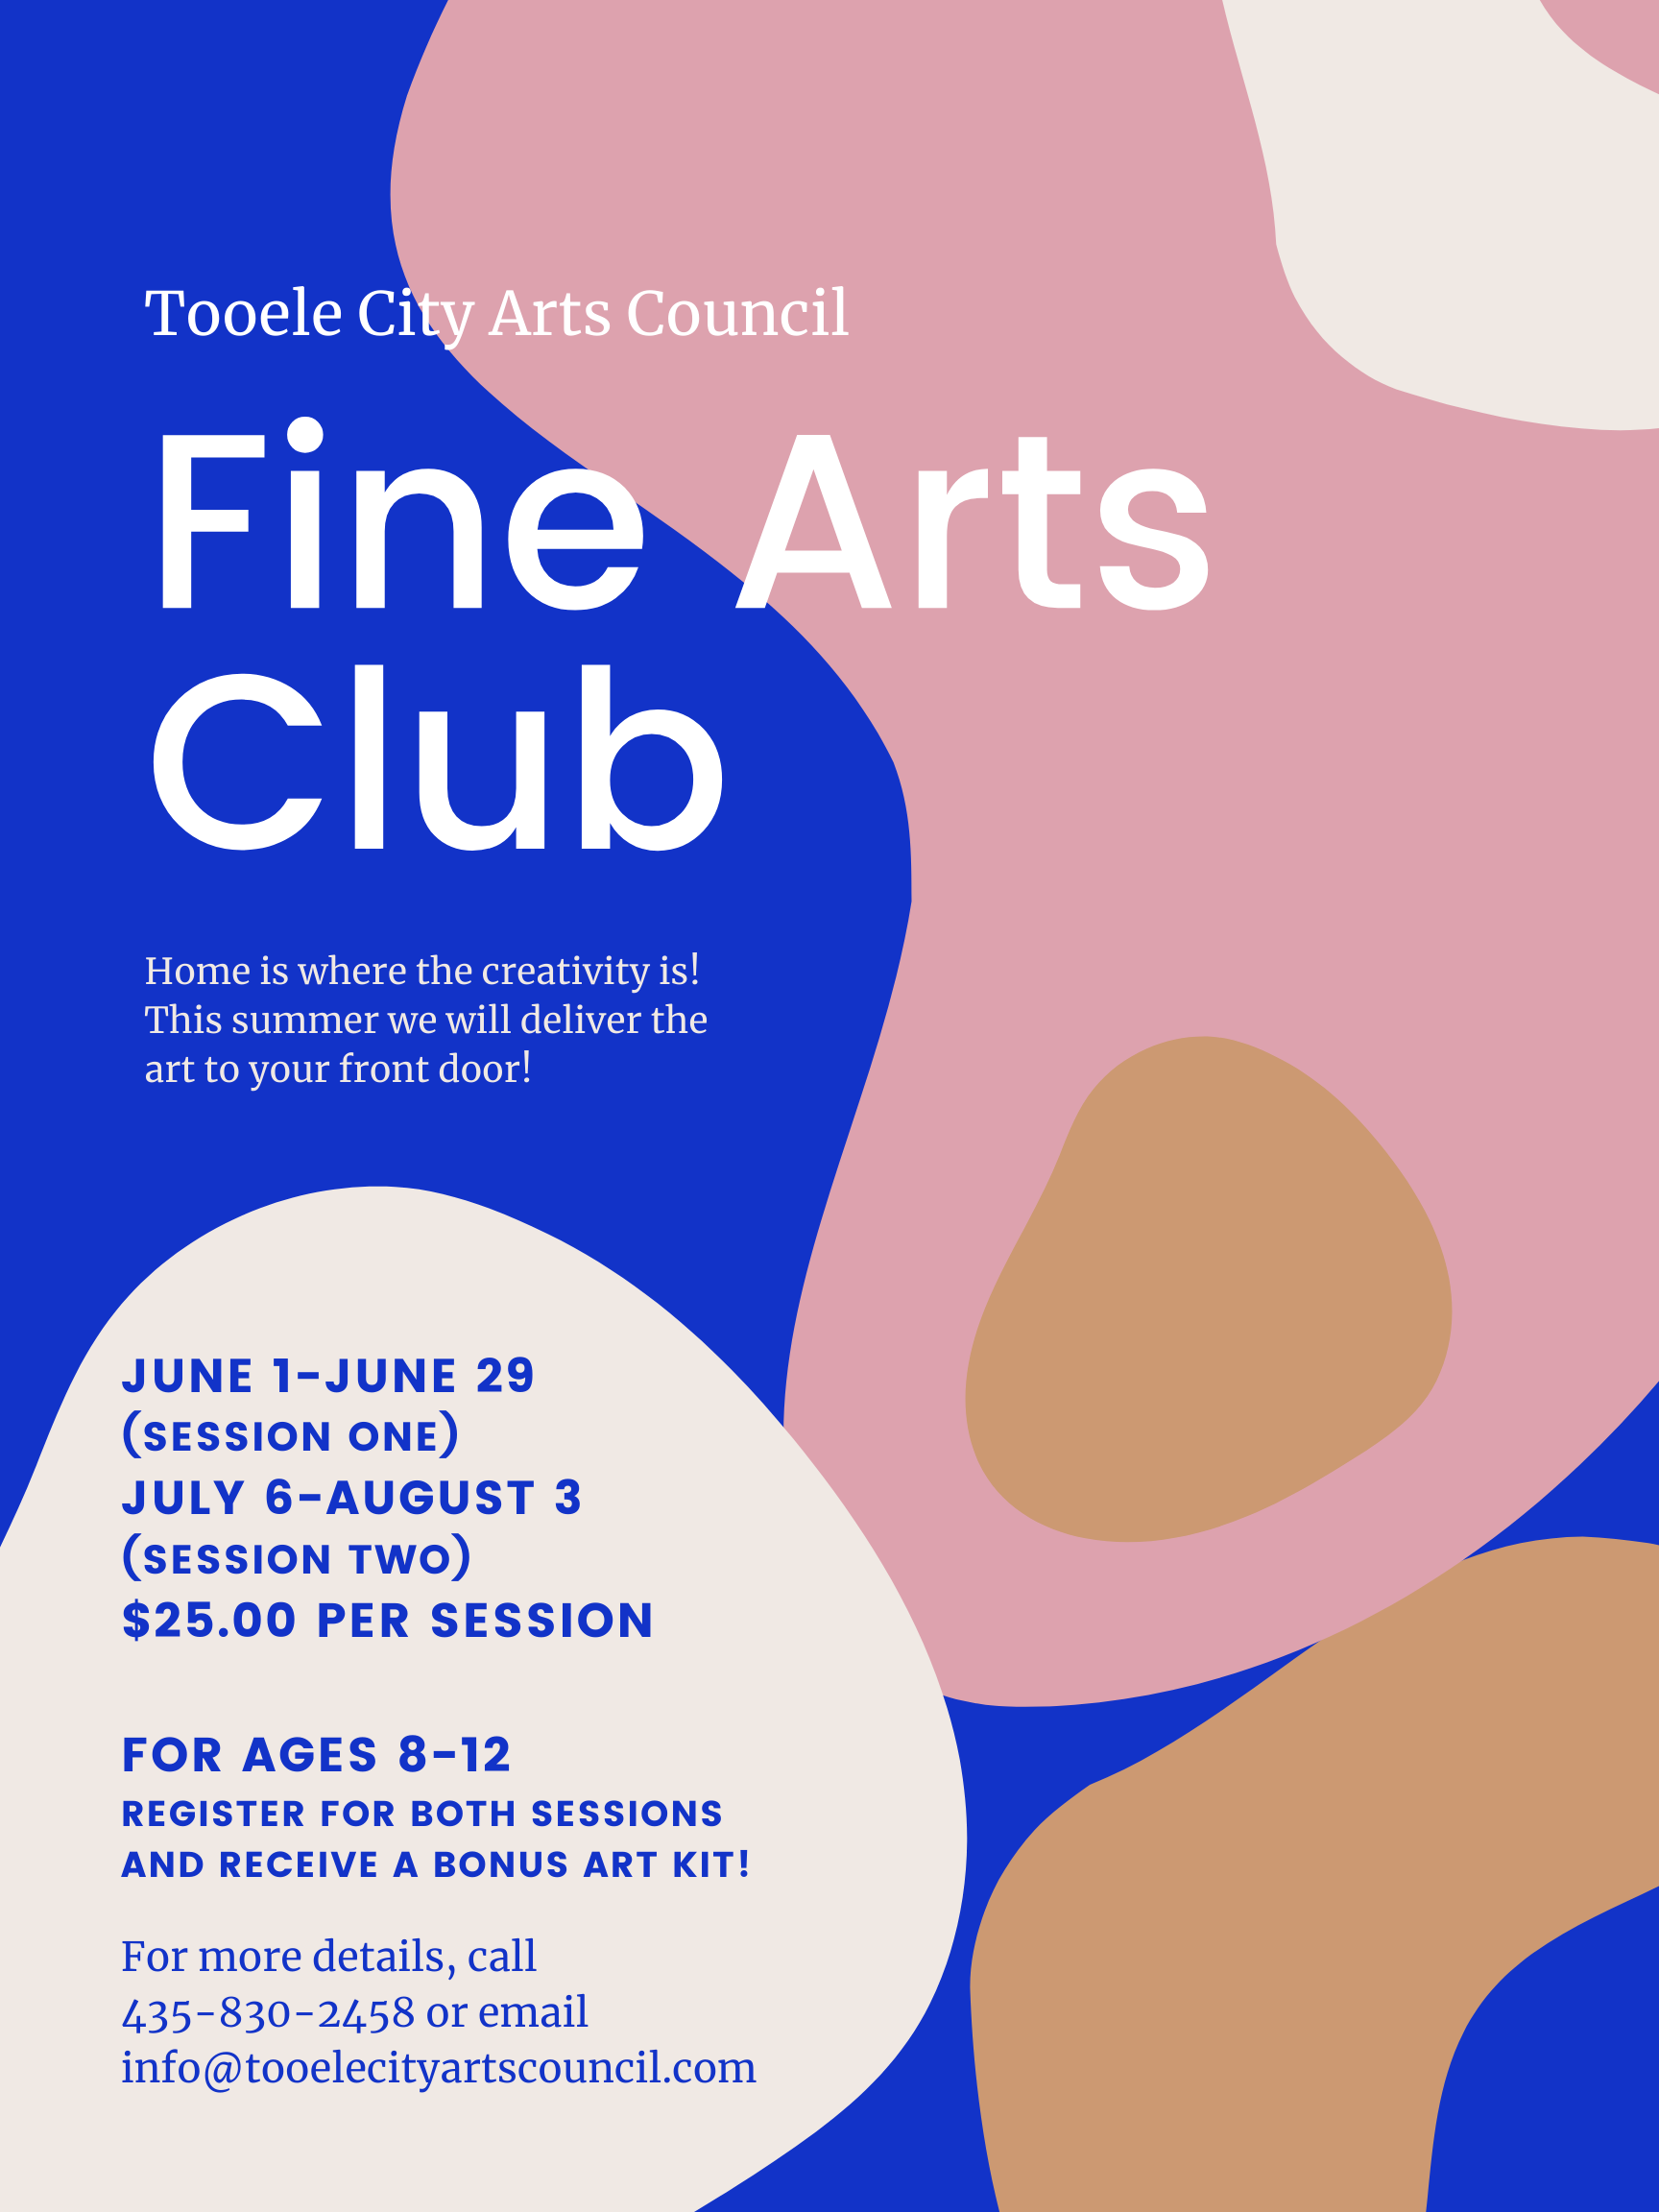 Fine Art Club - Summer 2020 (July Session) @ See details | Tooele | Utah | United States